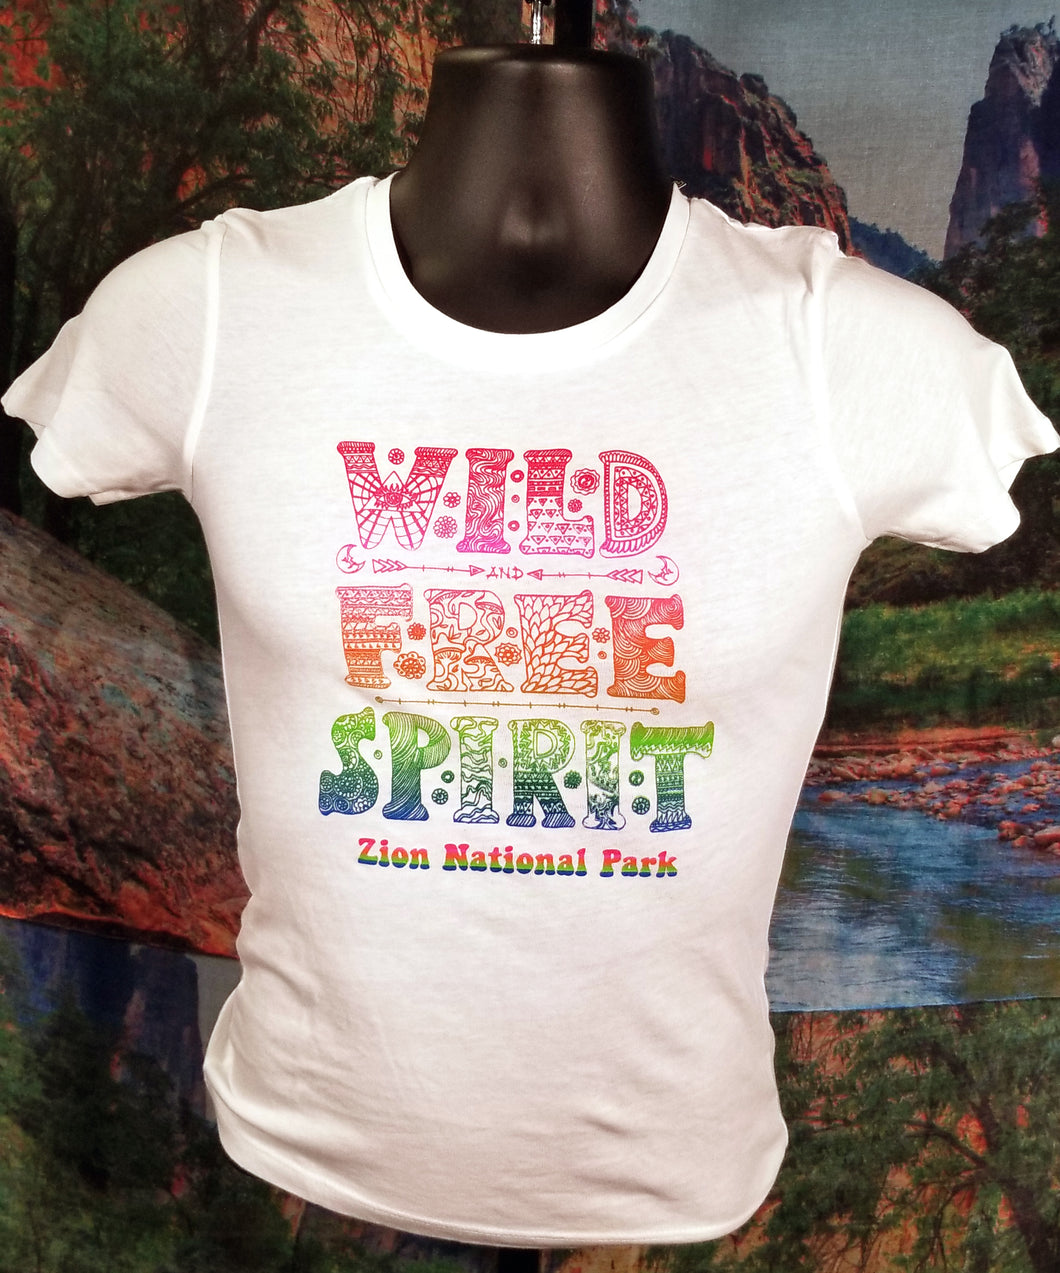 Wild Free Spirit Zion National Park T-Shirt